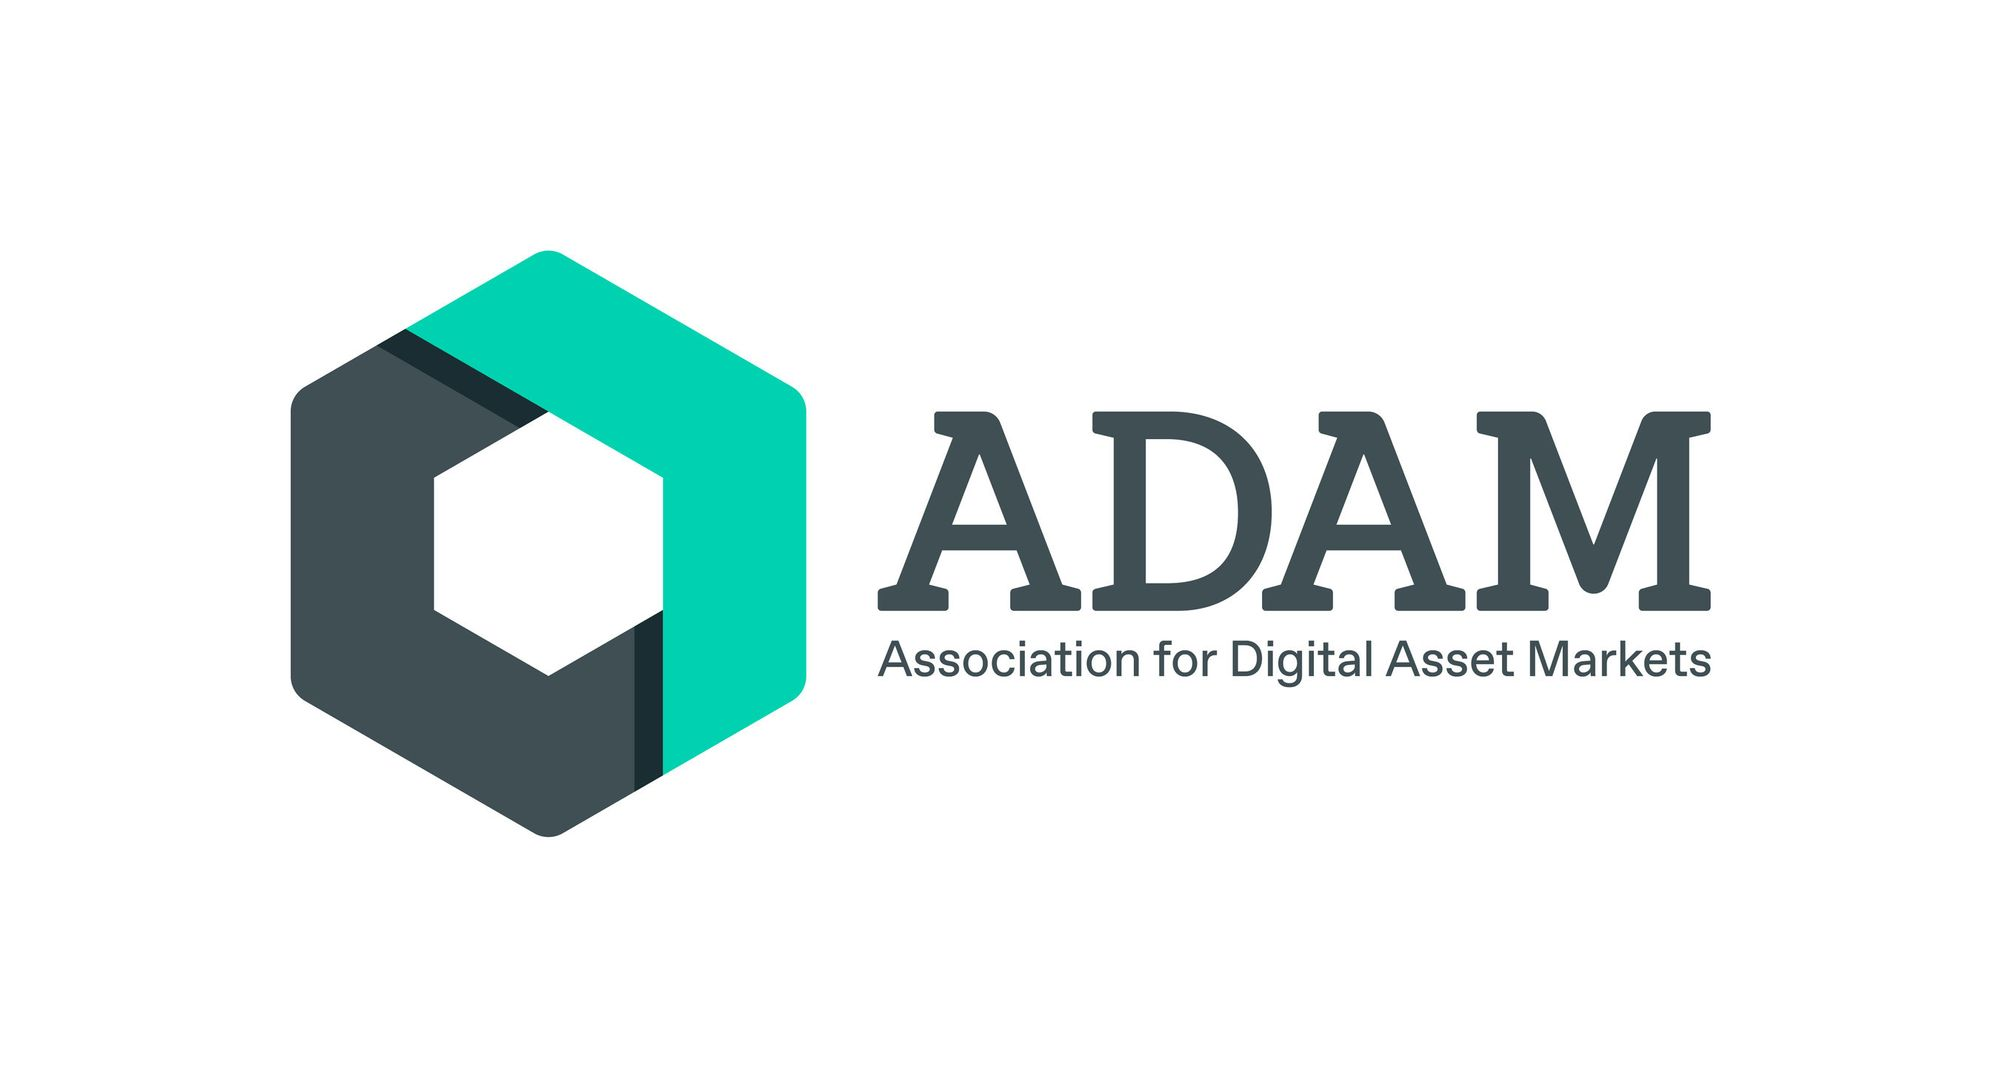 ADAM Membership Expands Significantly as Stakeholders Adopt the ADAM Code of Conduct to Promote Market Integrity